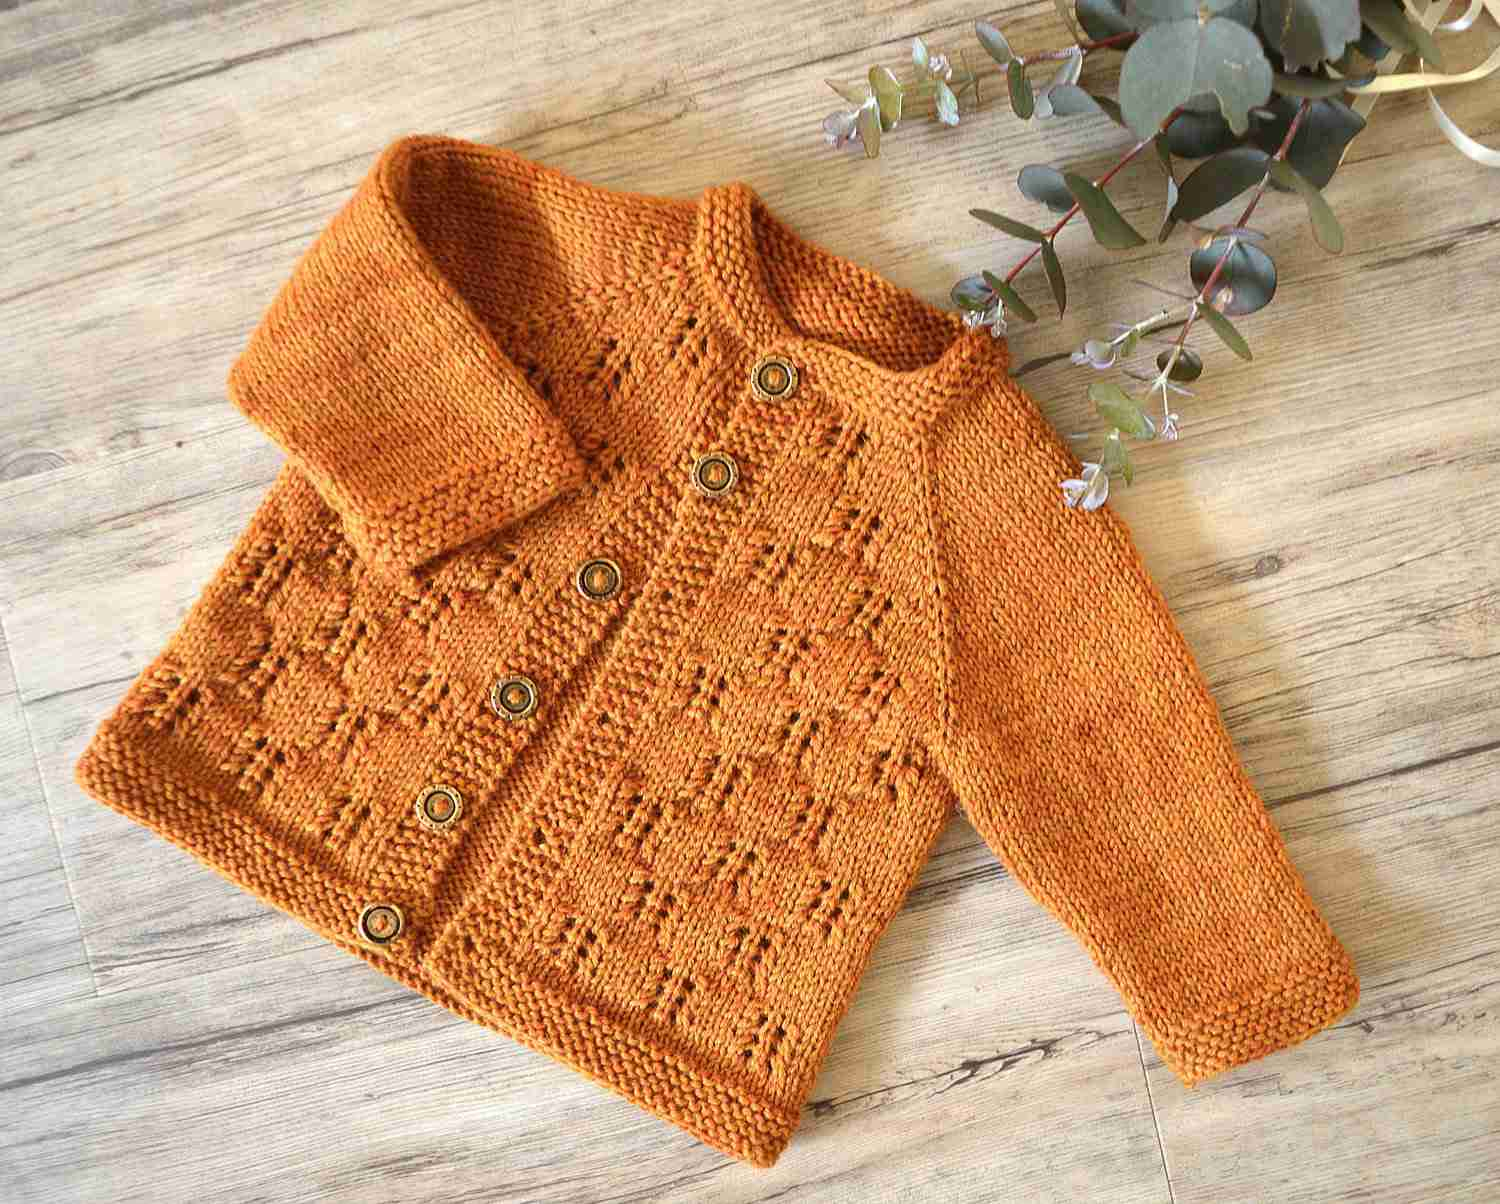 Knitting Patterns Designs 25 Best Knitting Patterns For Ba Clothes Accessories